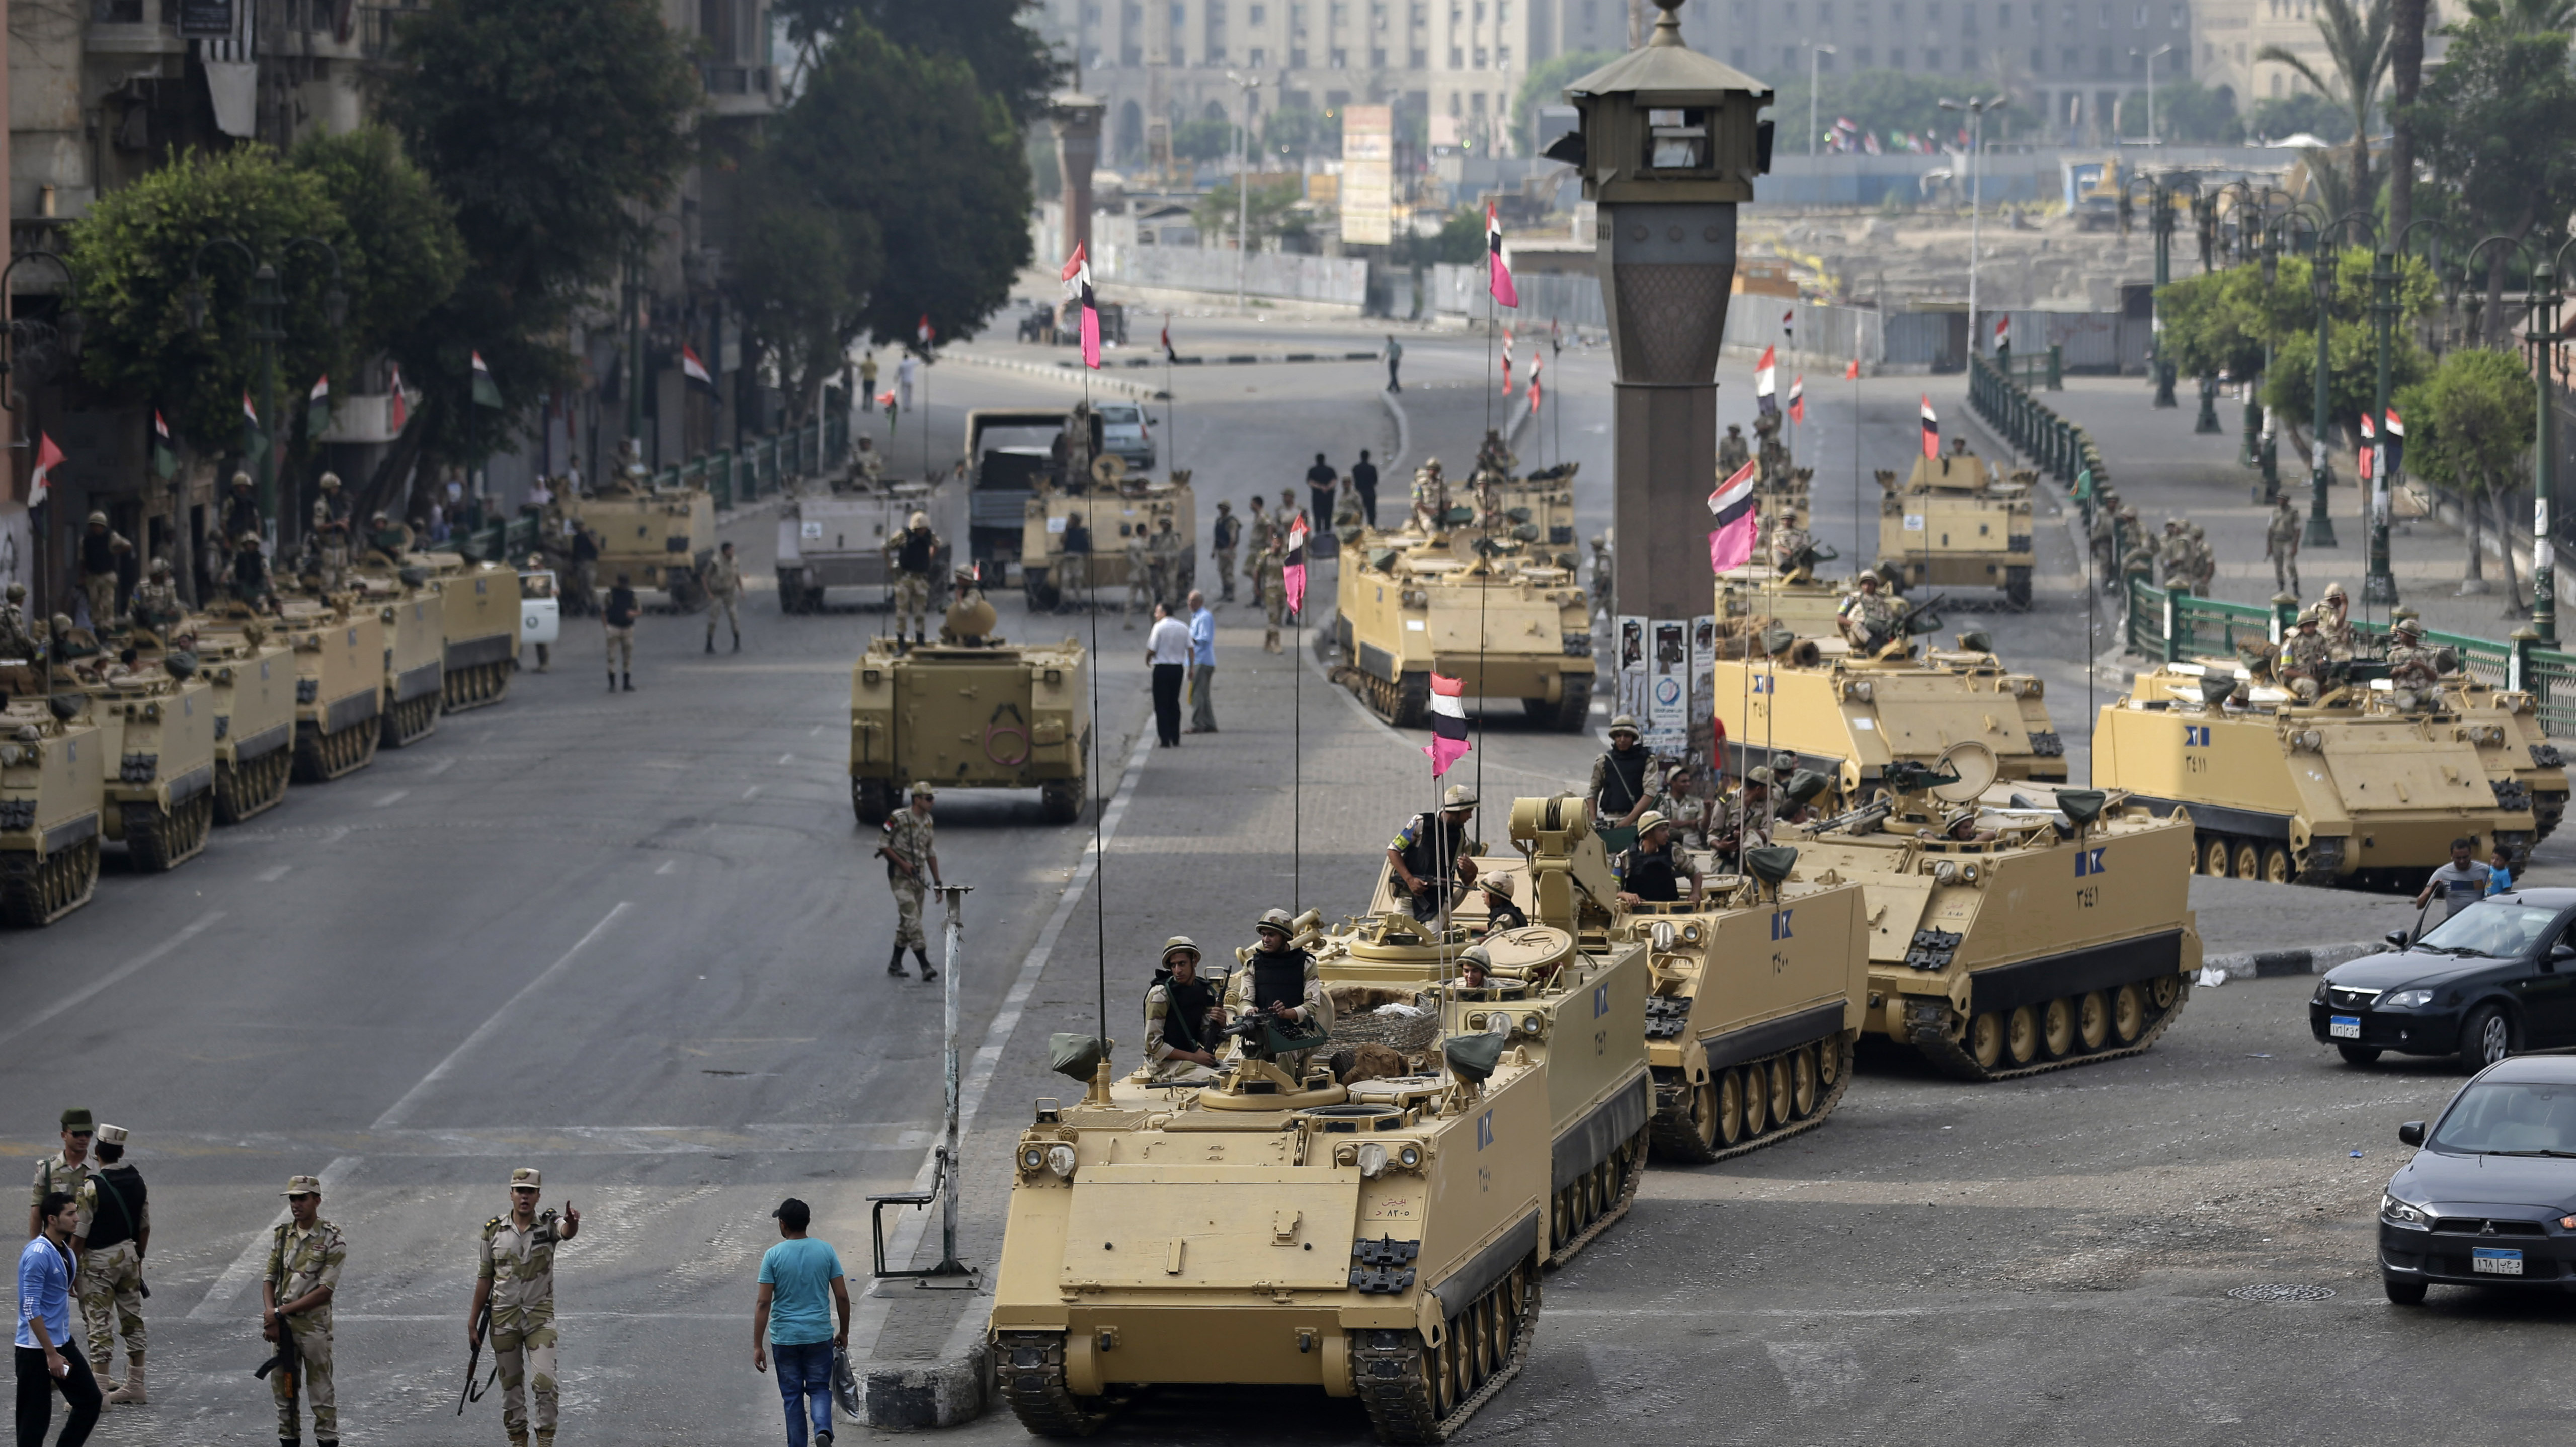 Egyptian army soldiers take their positions on top and next to their armored vehicles while guarding an entrance to Tahrir square in Cairo on Friday.